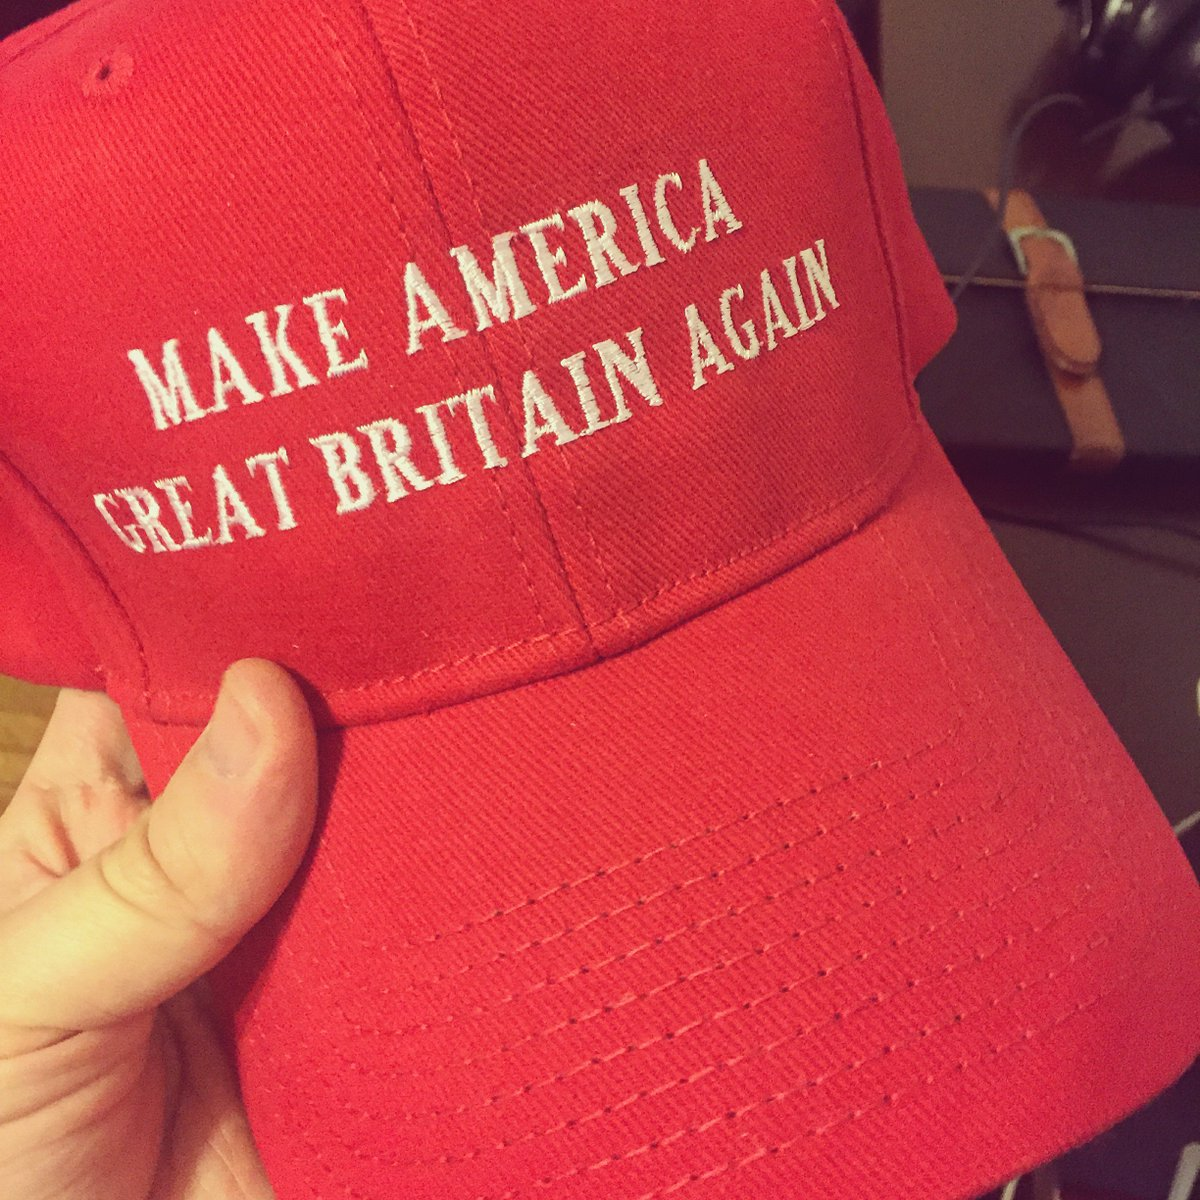 My new hat has arrived. https://t.co/pvJ8GWymBy